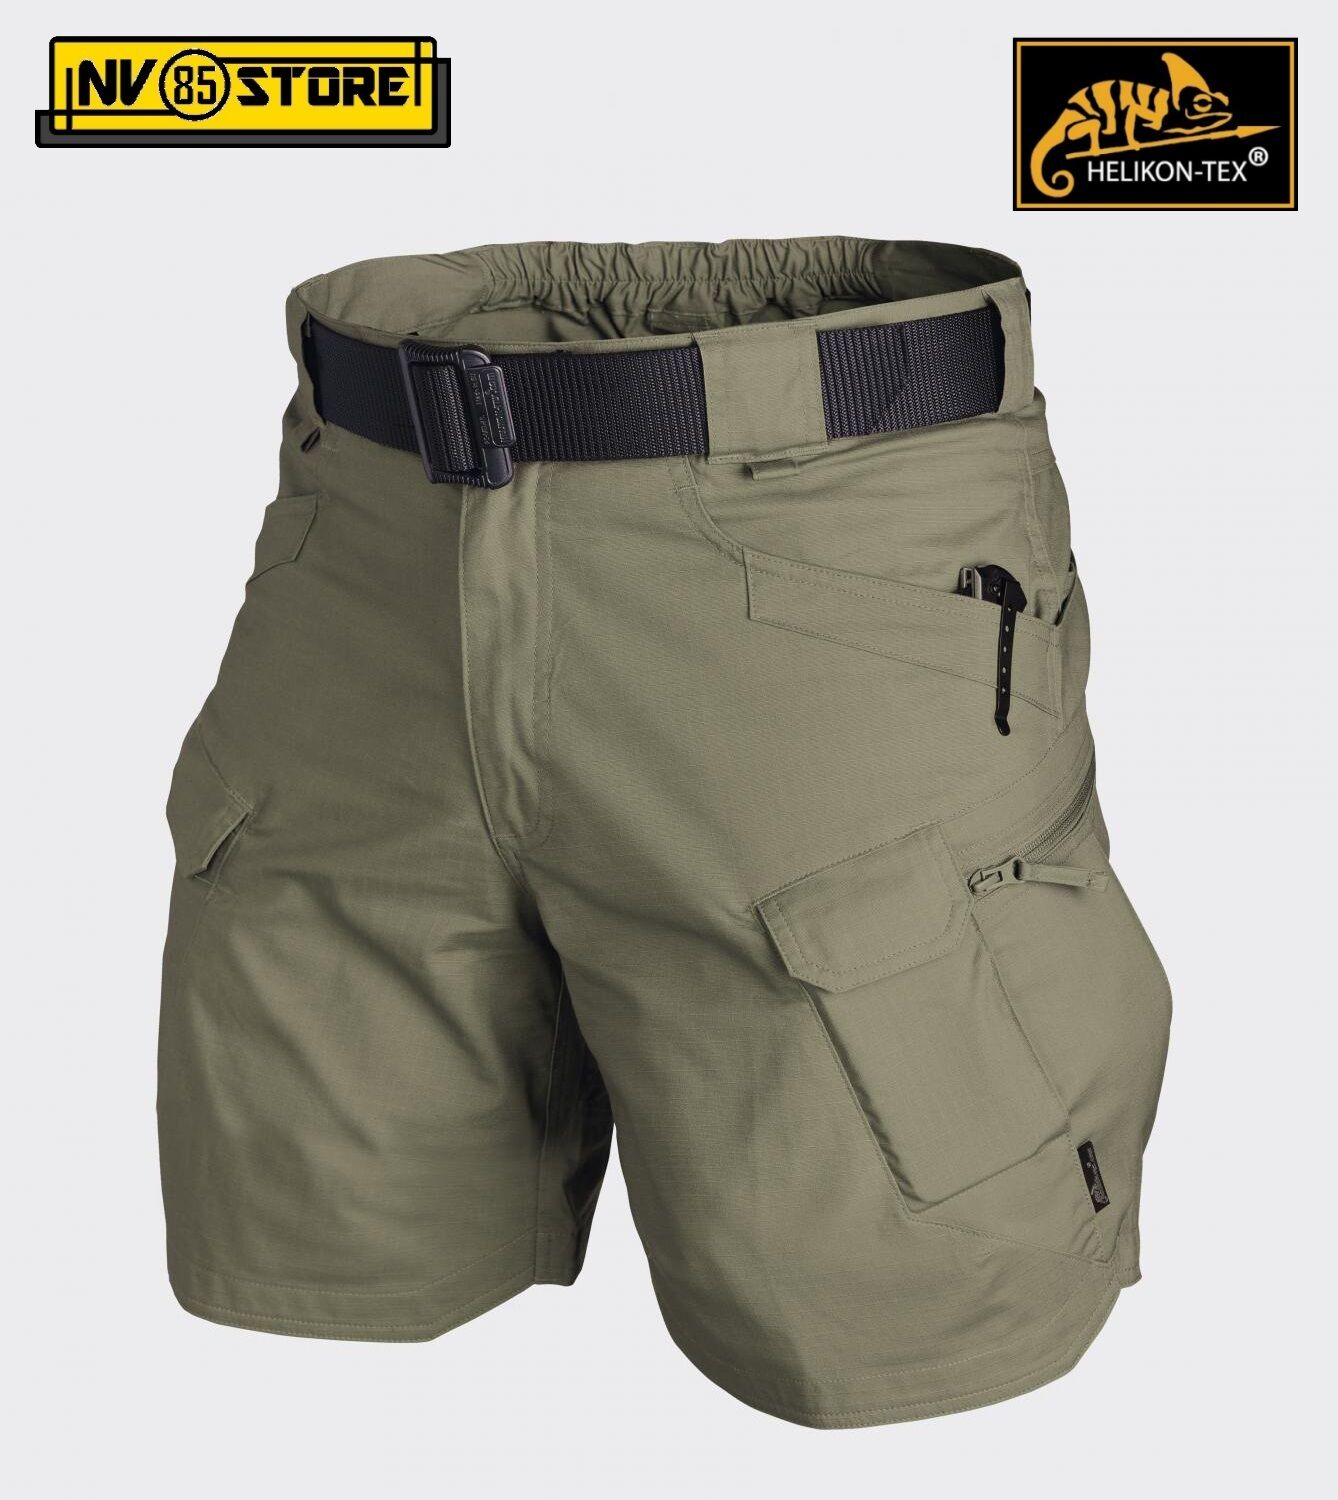 Bermuda HELIKON-TEX UTS Shorts Trousers Tactical Hunting Softair Army Outdoor AG